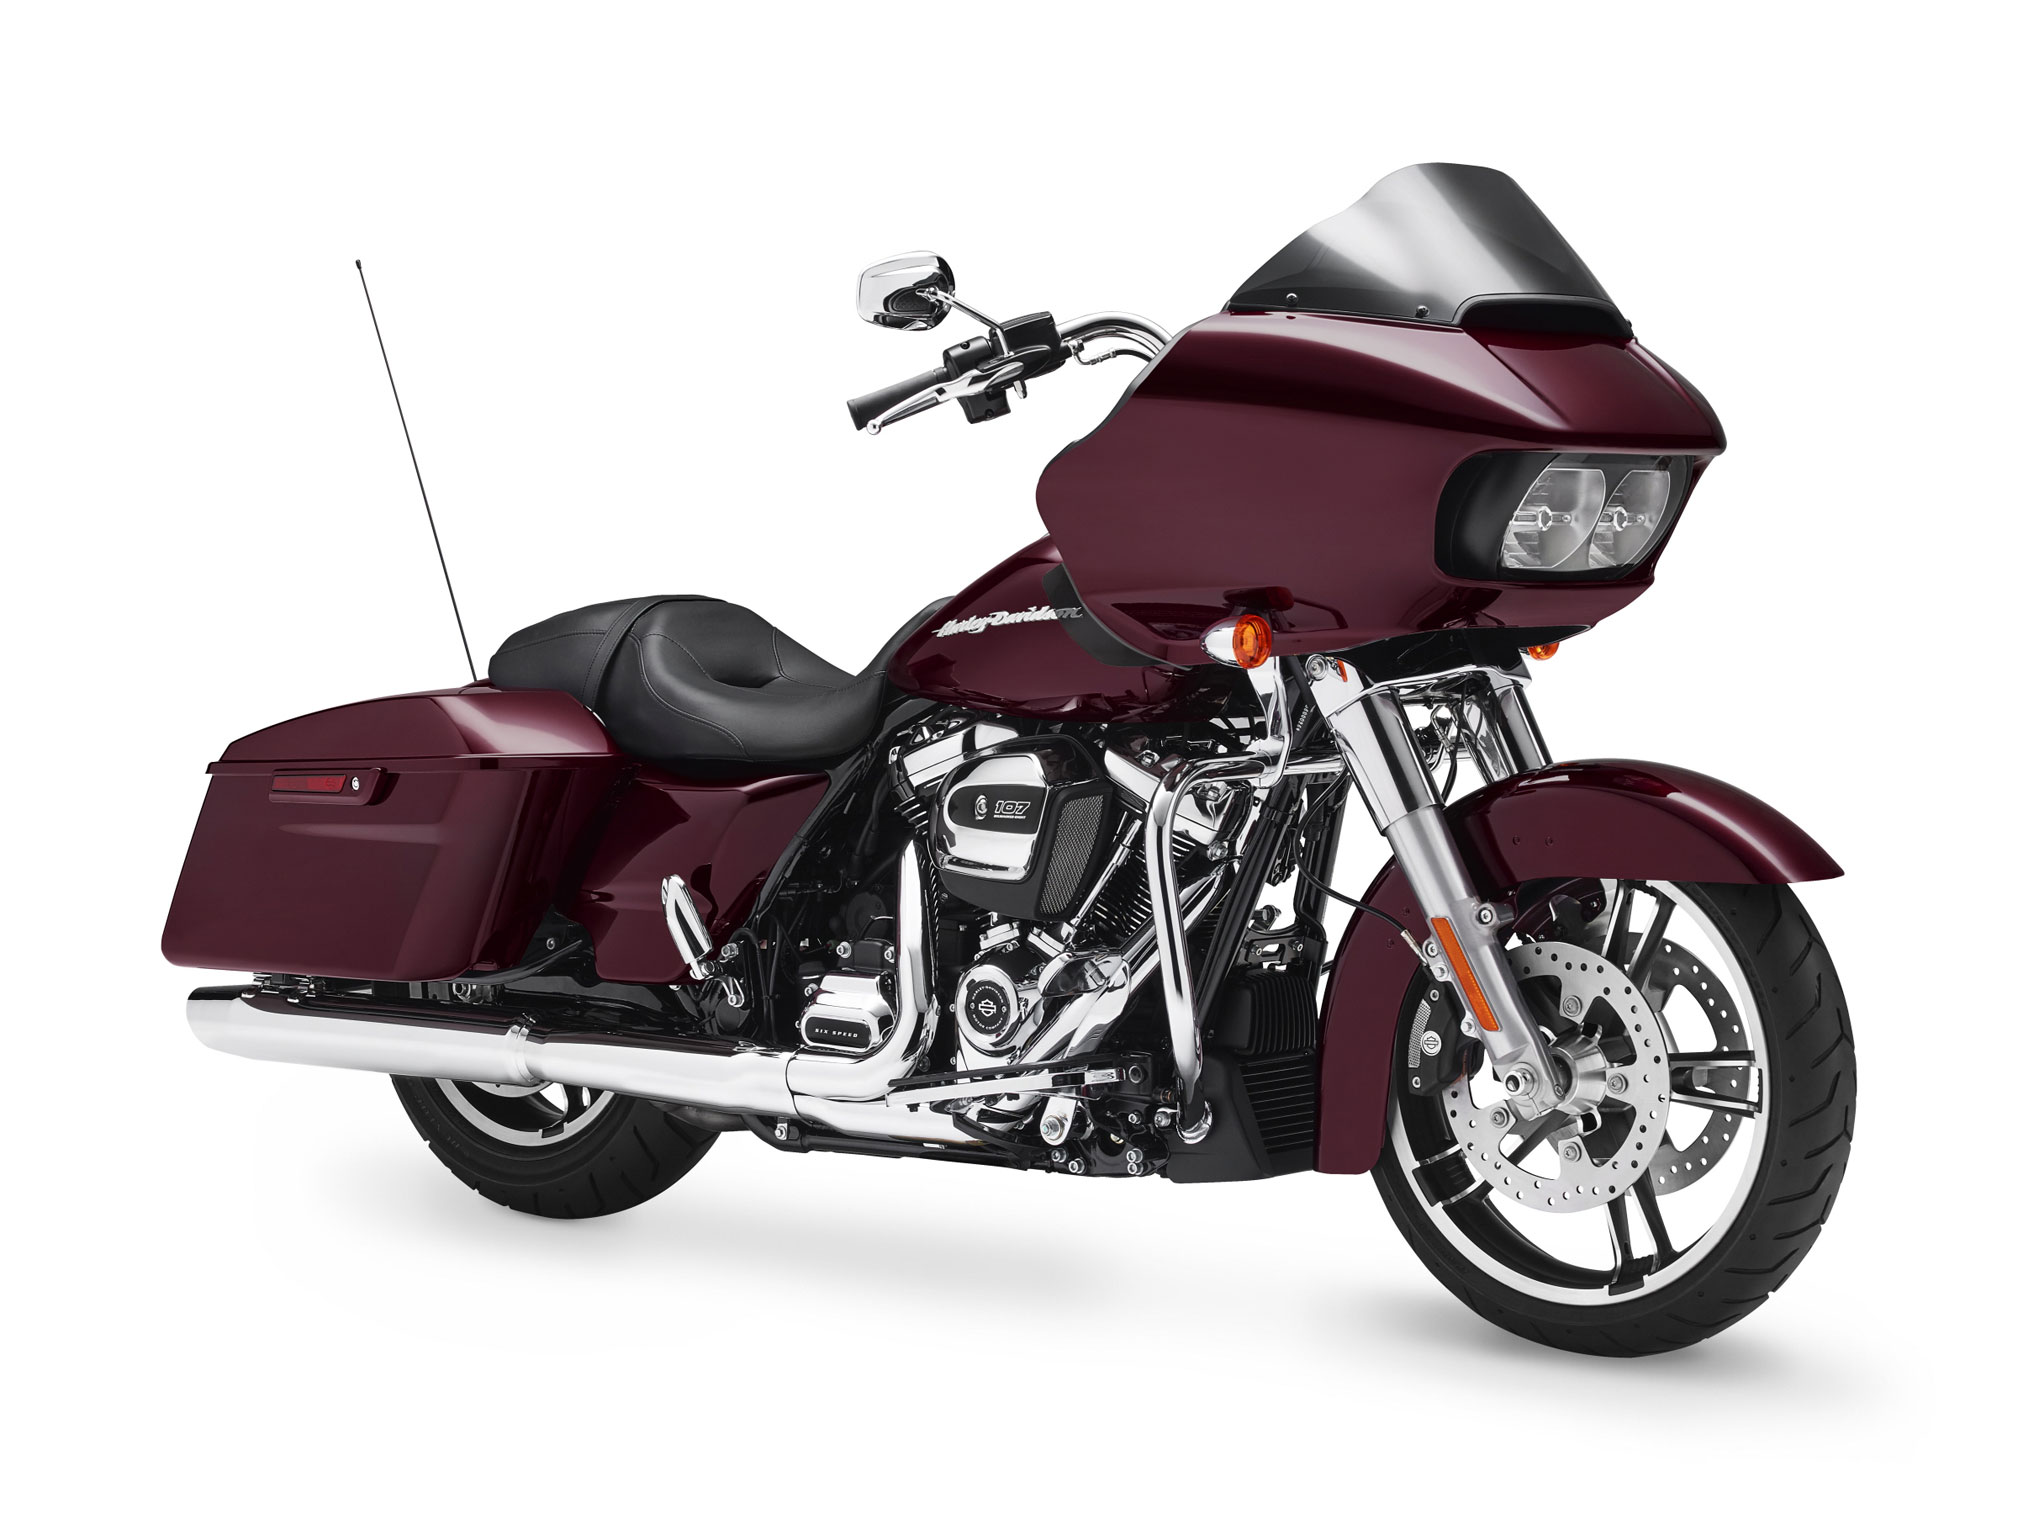 2018 Harley-Davidson Road Glide Review • Total Motorcycle